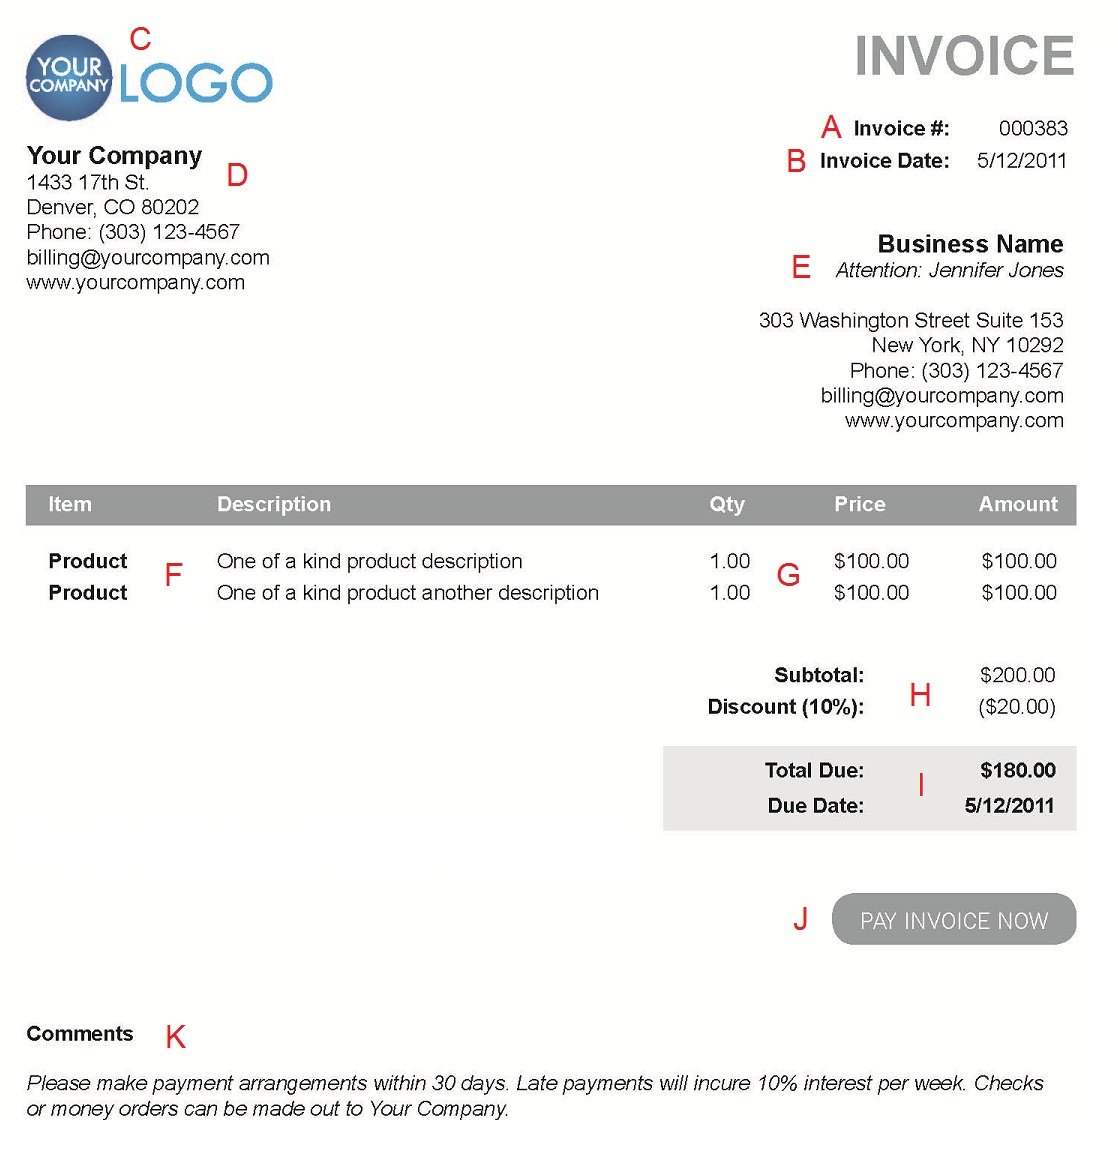 Coolmathgamesus  Outstanding The  Different Sections Of An Electronic Payment Invoice With Hot A  With Amazing Party City Store Return Policy No Receipt Also Will Toys R Us Return Without Receipt In Addition Palm Beach County Business Tax Receipt And Cash Receipts From Customers As Well As Restaurant Receipts Templates Additionally Kmart Return Without Receipt From Paysimplecom With Coolmathgamesus  Hot The  Different Sections Of An Electronic Payment Invoice With Amazing A  And Outstanding Party City Store Return Policy No Receipt Also Will Toys R Us Return Without Receipt In Addition Palm Beach County Business Tax Receipt From Paysimplecom